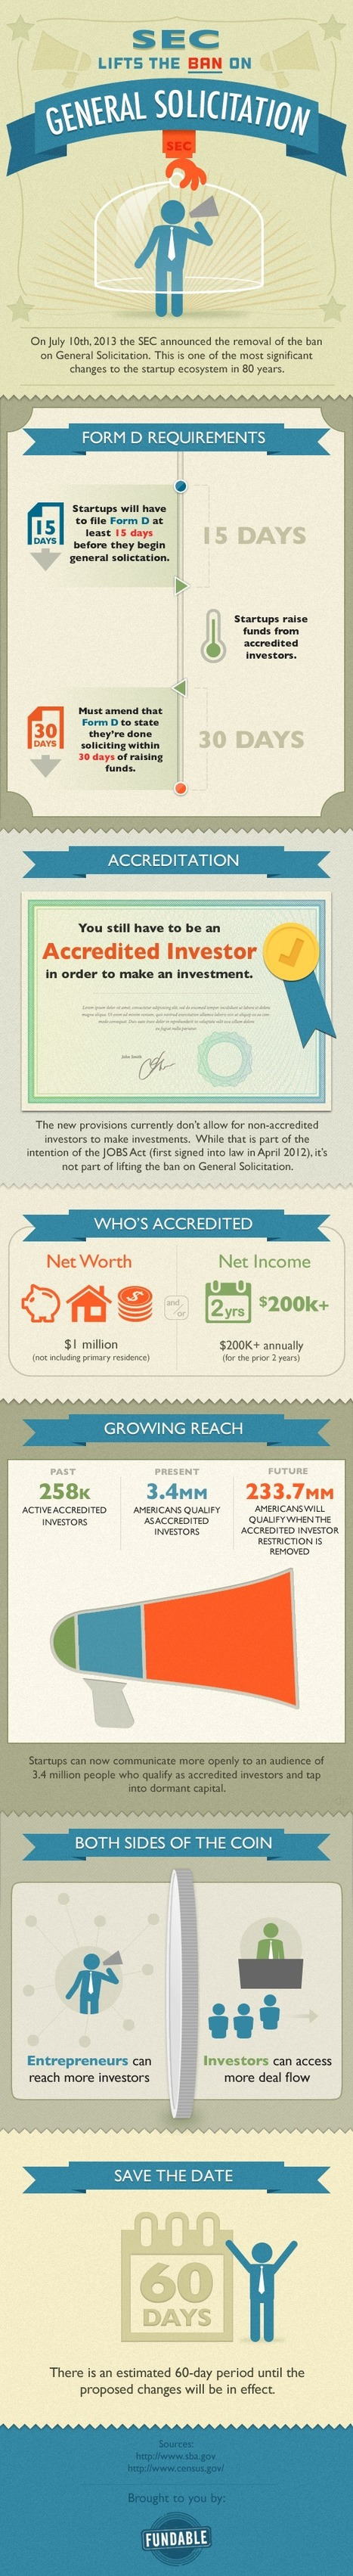 INFOGRAPHIC: An Explanation Of General Solicitation From Fundable - Crowdfund Insider | Crowdfunding World | Scoop.it